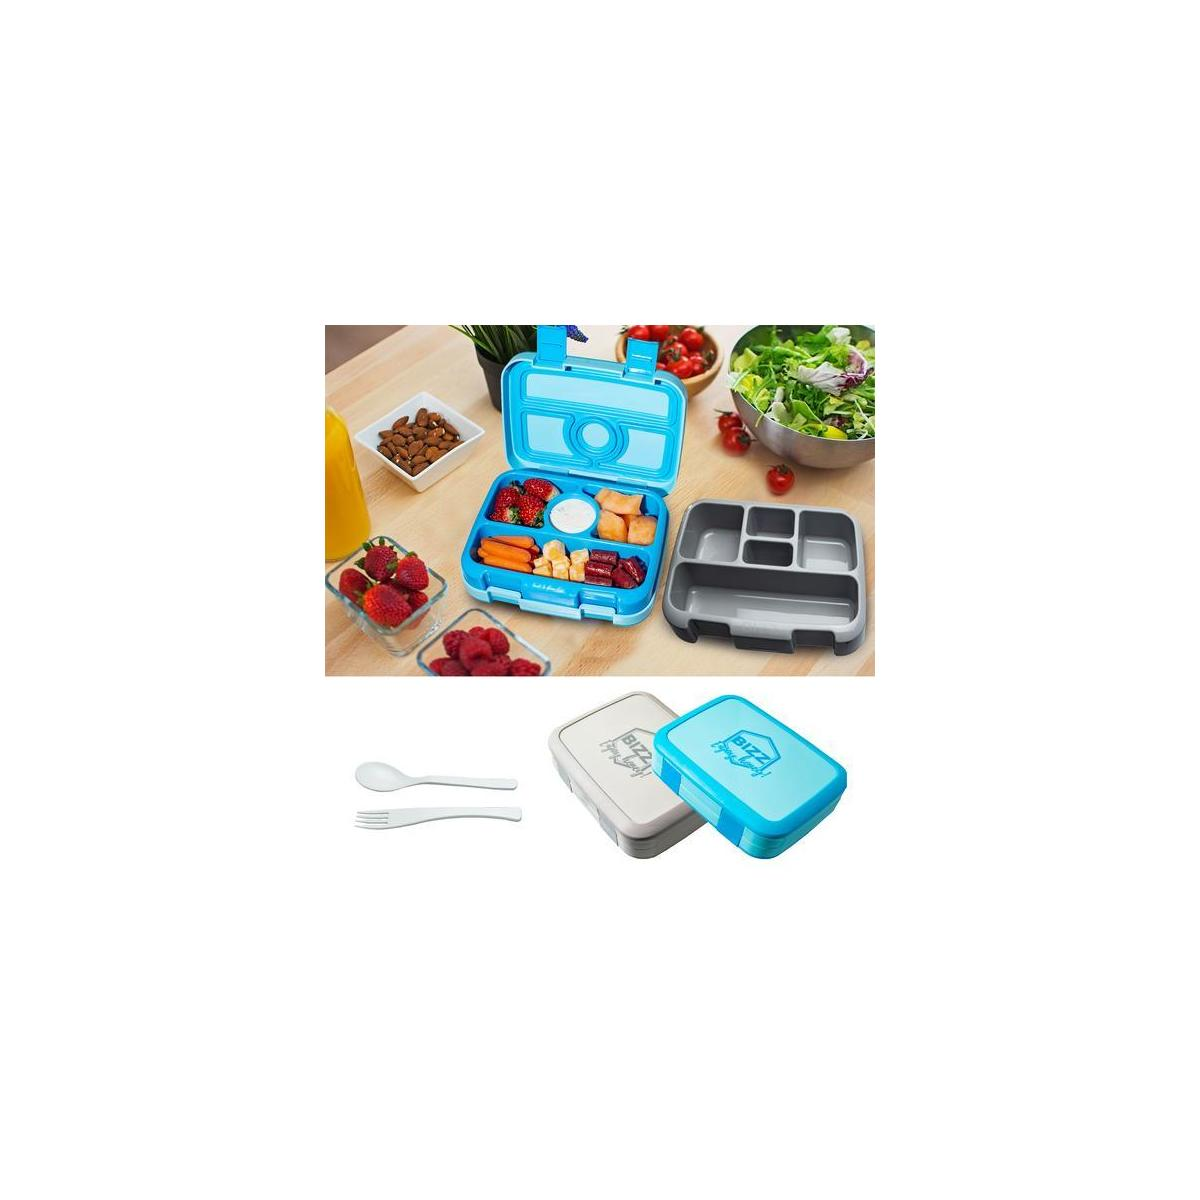 Bento Box Set with Utensils w/Removable Microwaveable, Dishwasher Safe Tray (2-Pack) Portion Control Meal Prep Containers Lunch Boxes